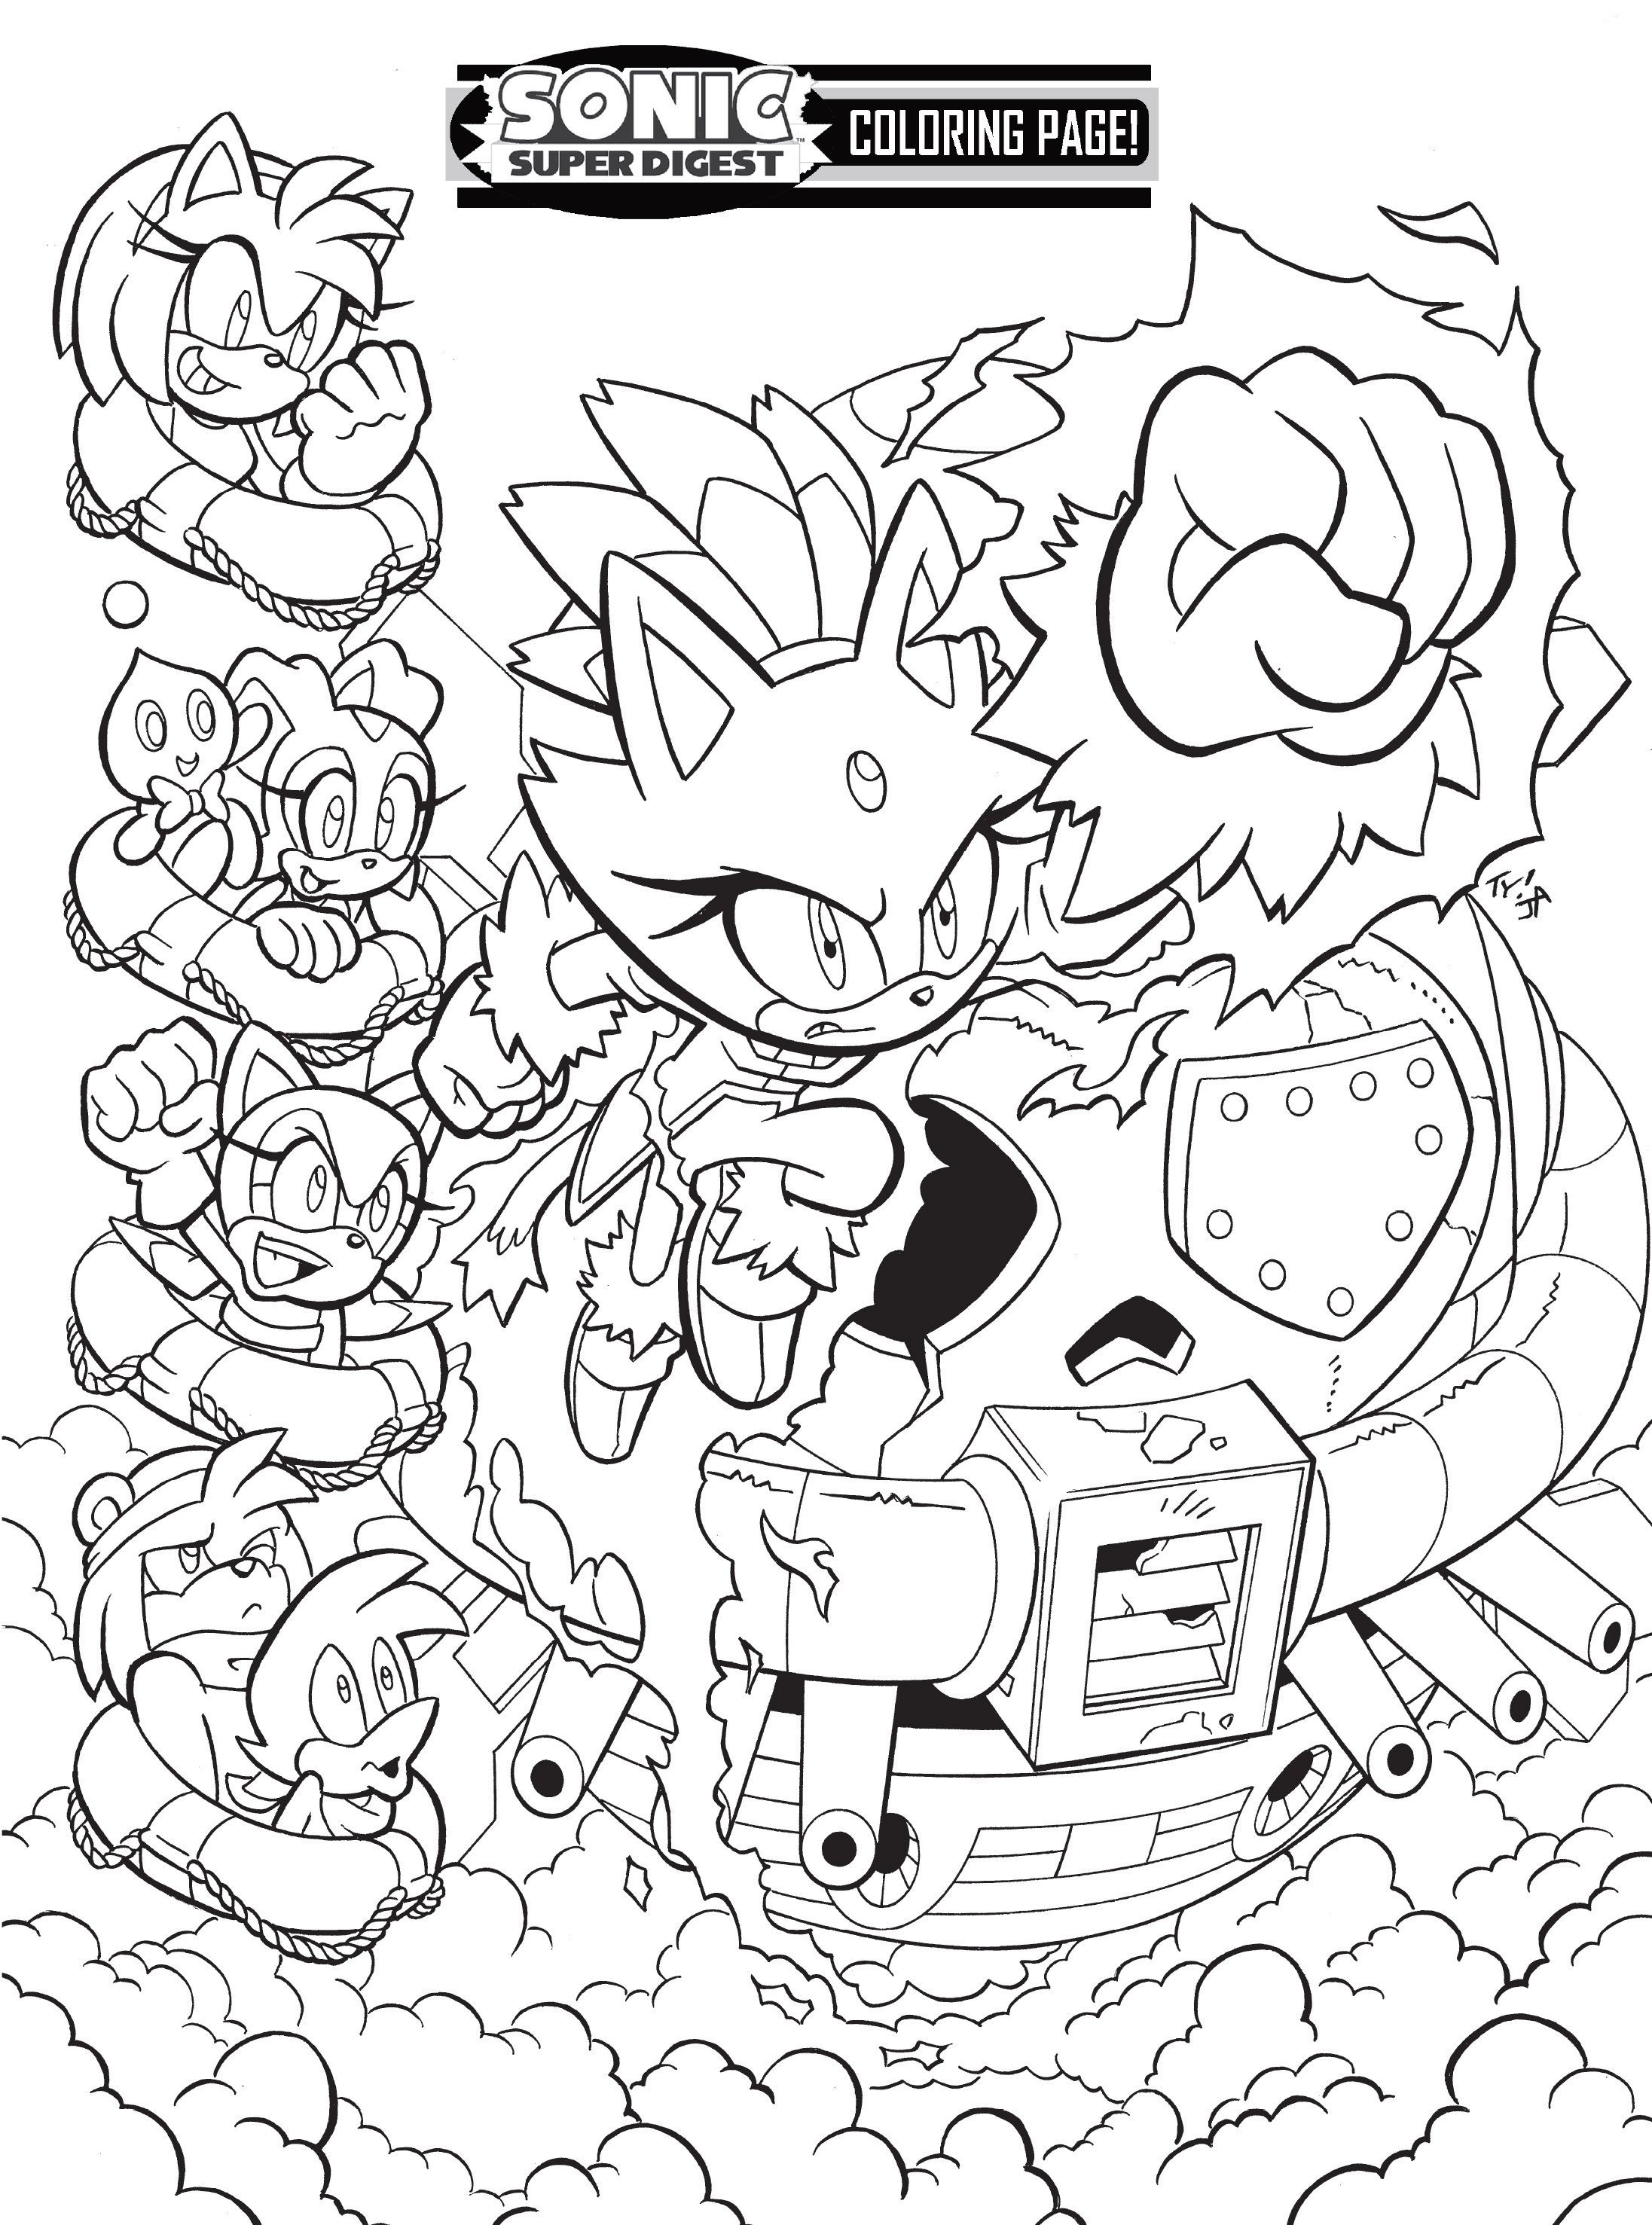 Read online Sonic Super Digest comic -  Issue #8 - 114